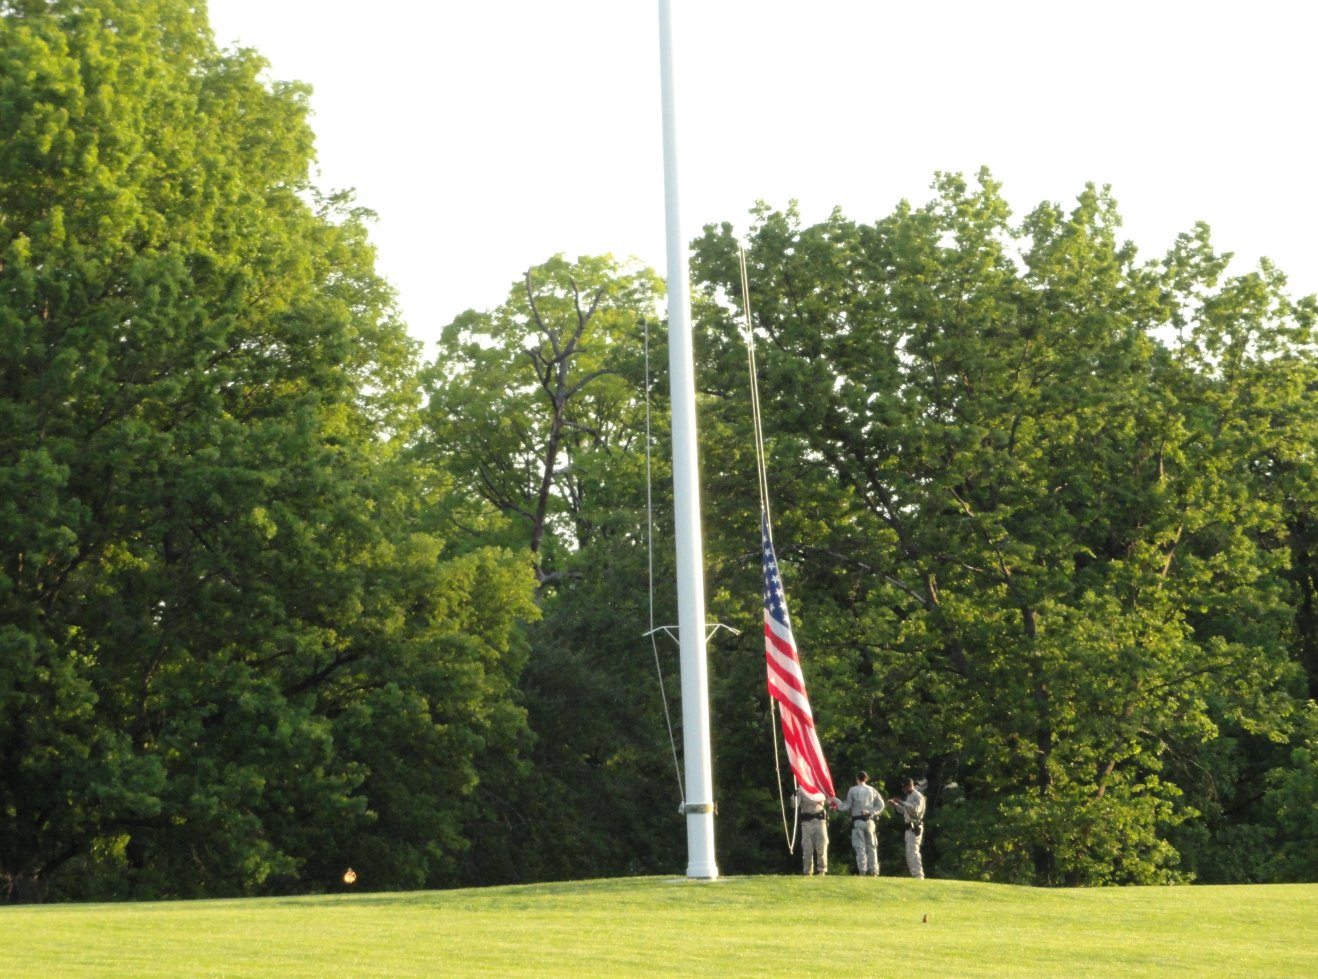 Flag raising at Ft Meyer